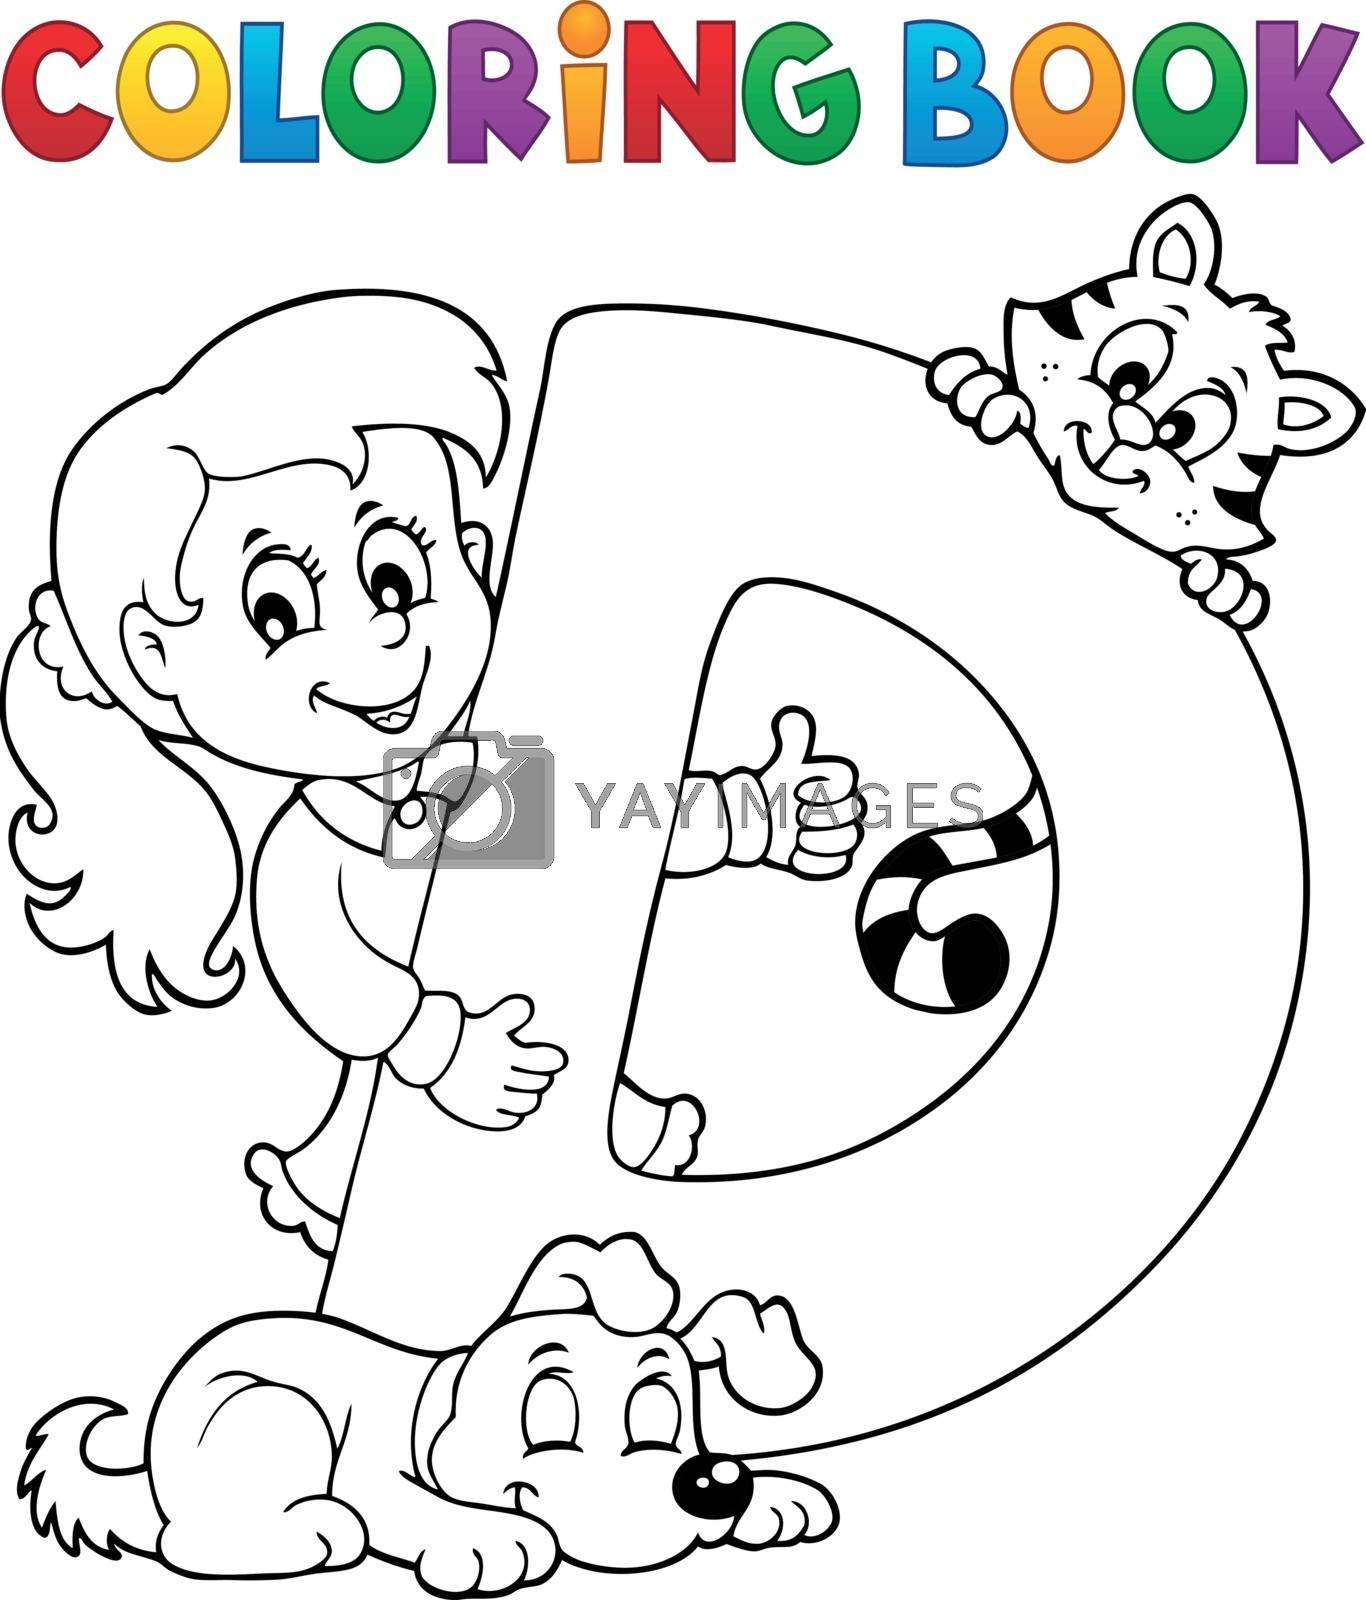 Coloring book girl and pets by letter D - eps10 vector illustration.